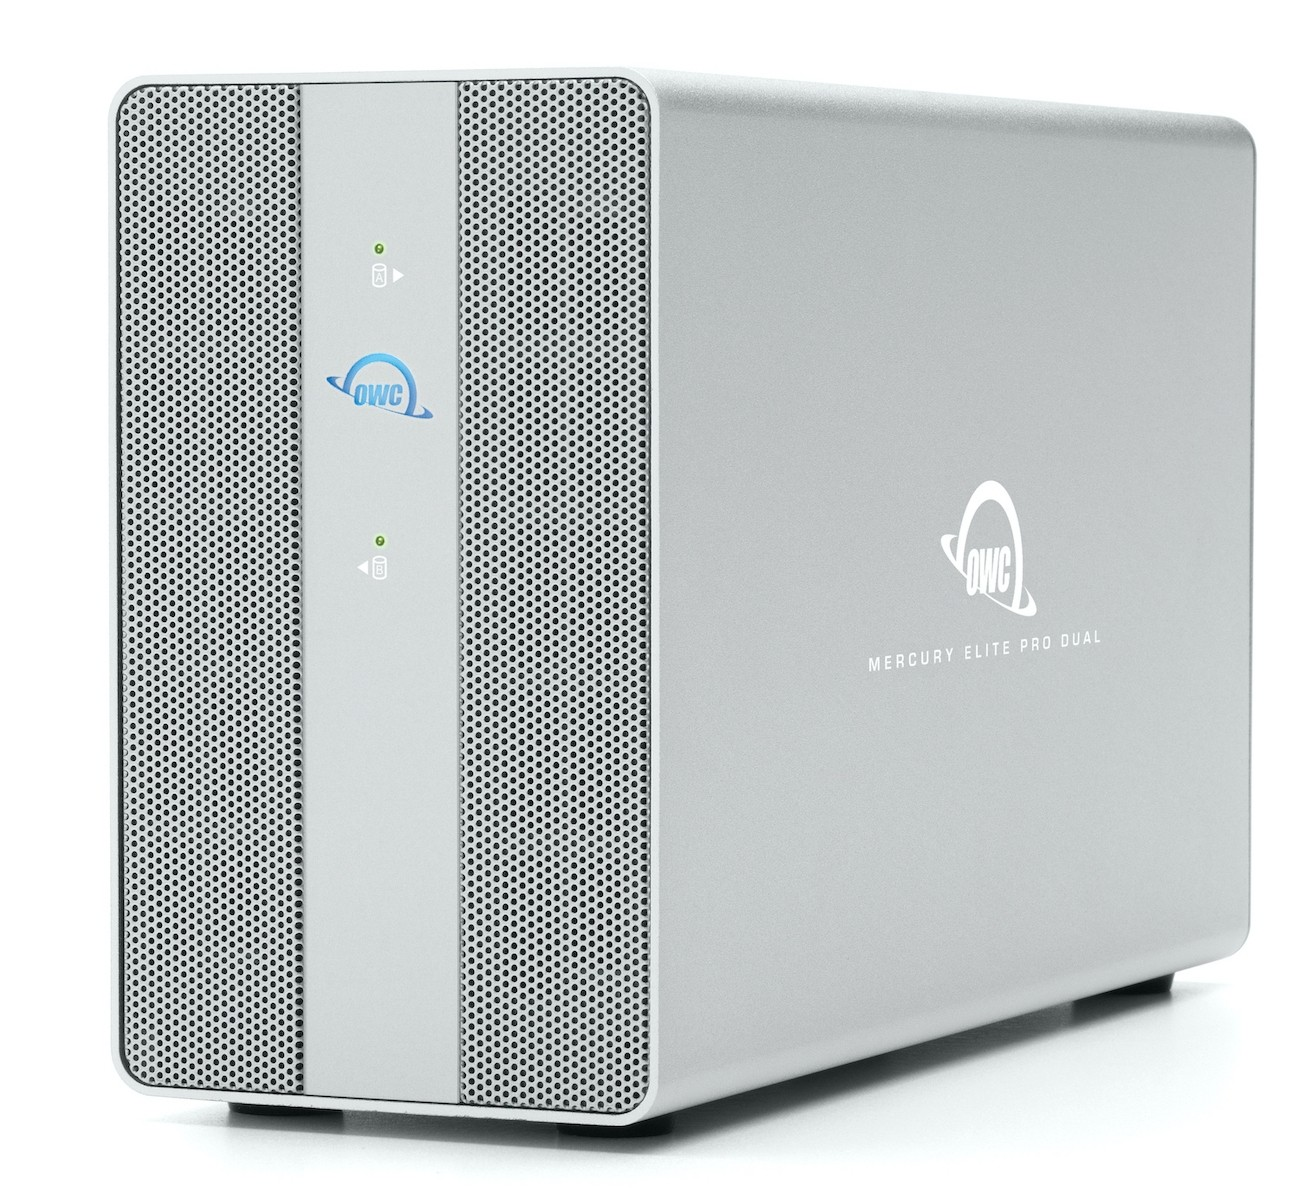 8TB OWC Mercury Elite Pro Dual SSD RAID Storage Solution with USB (10Gb/s) + 3-Port Hub, OWCMEDCH7S08